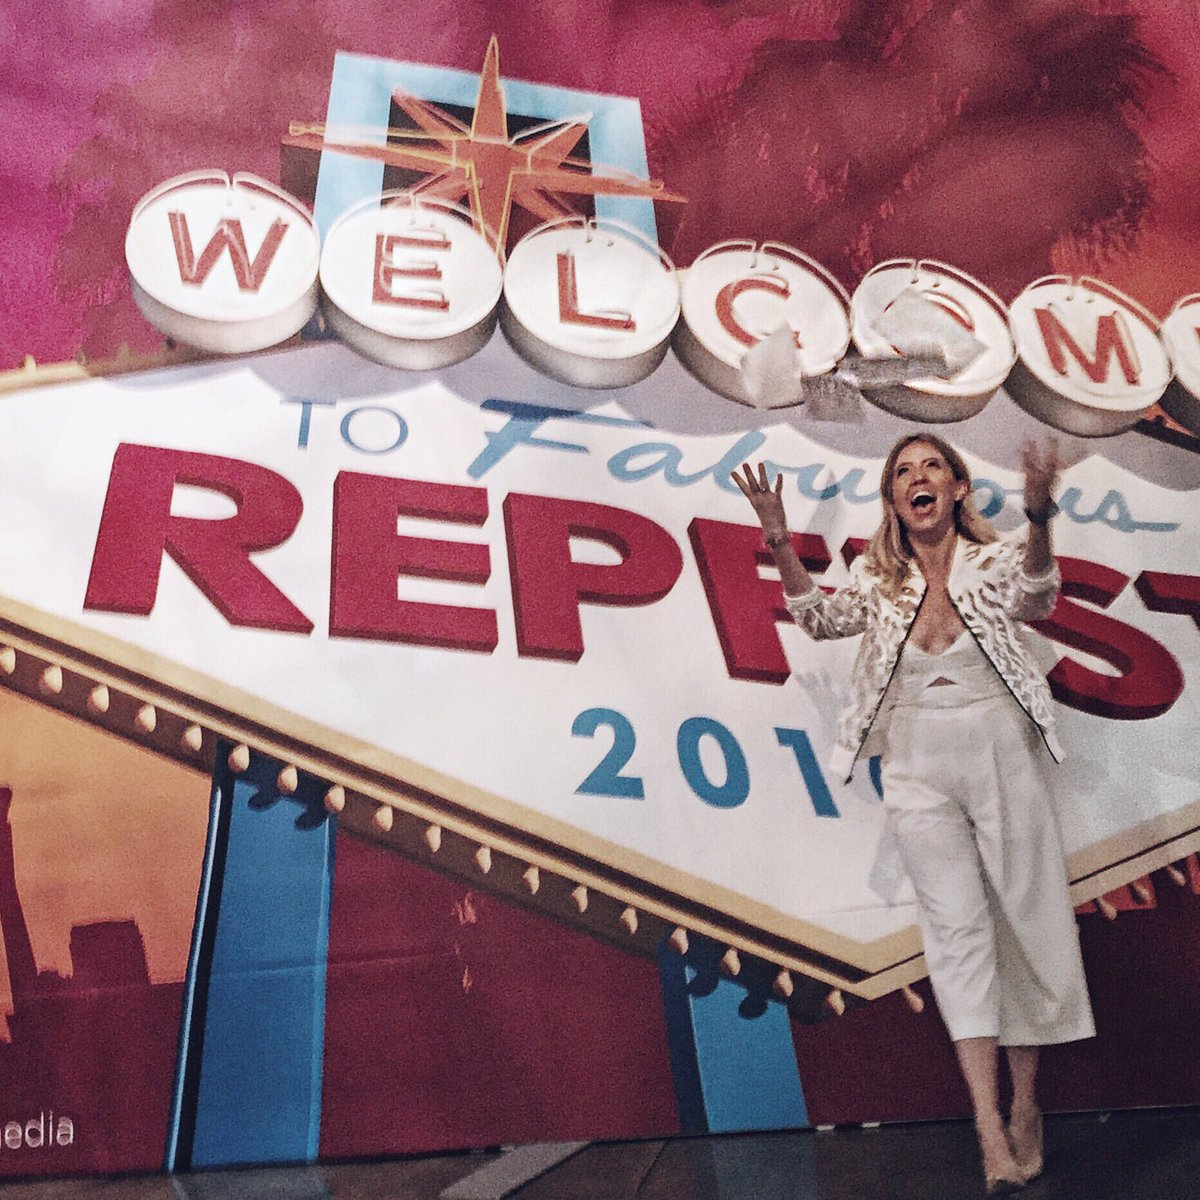 Wrapped an incredible day at #RepFest with Avon! @AvonInsider https://t.co/v2ipQNDigW